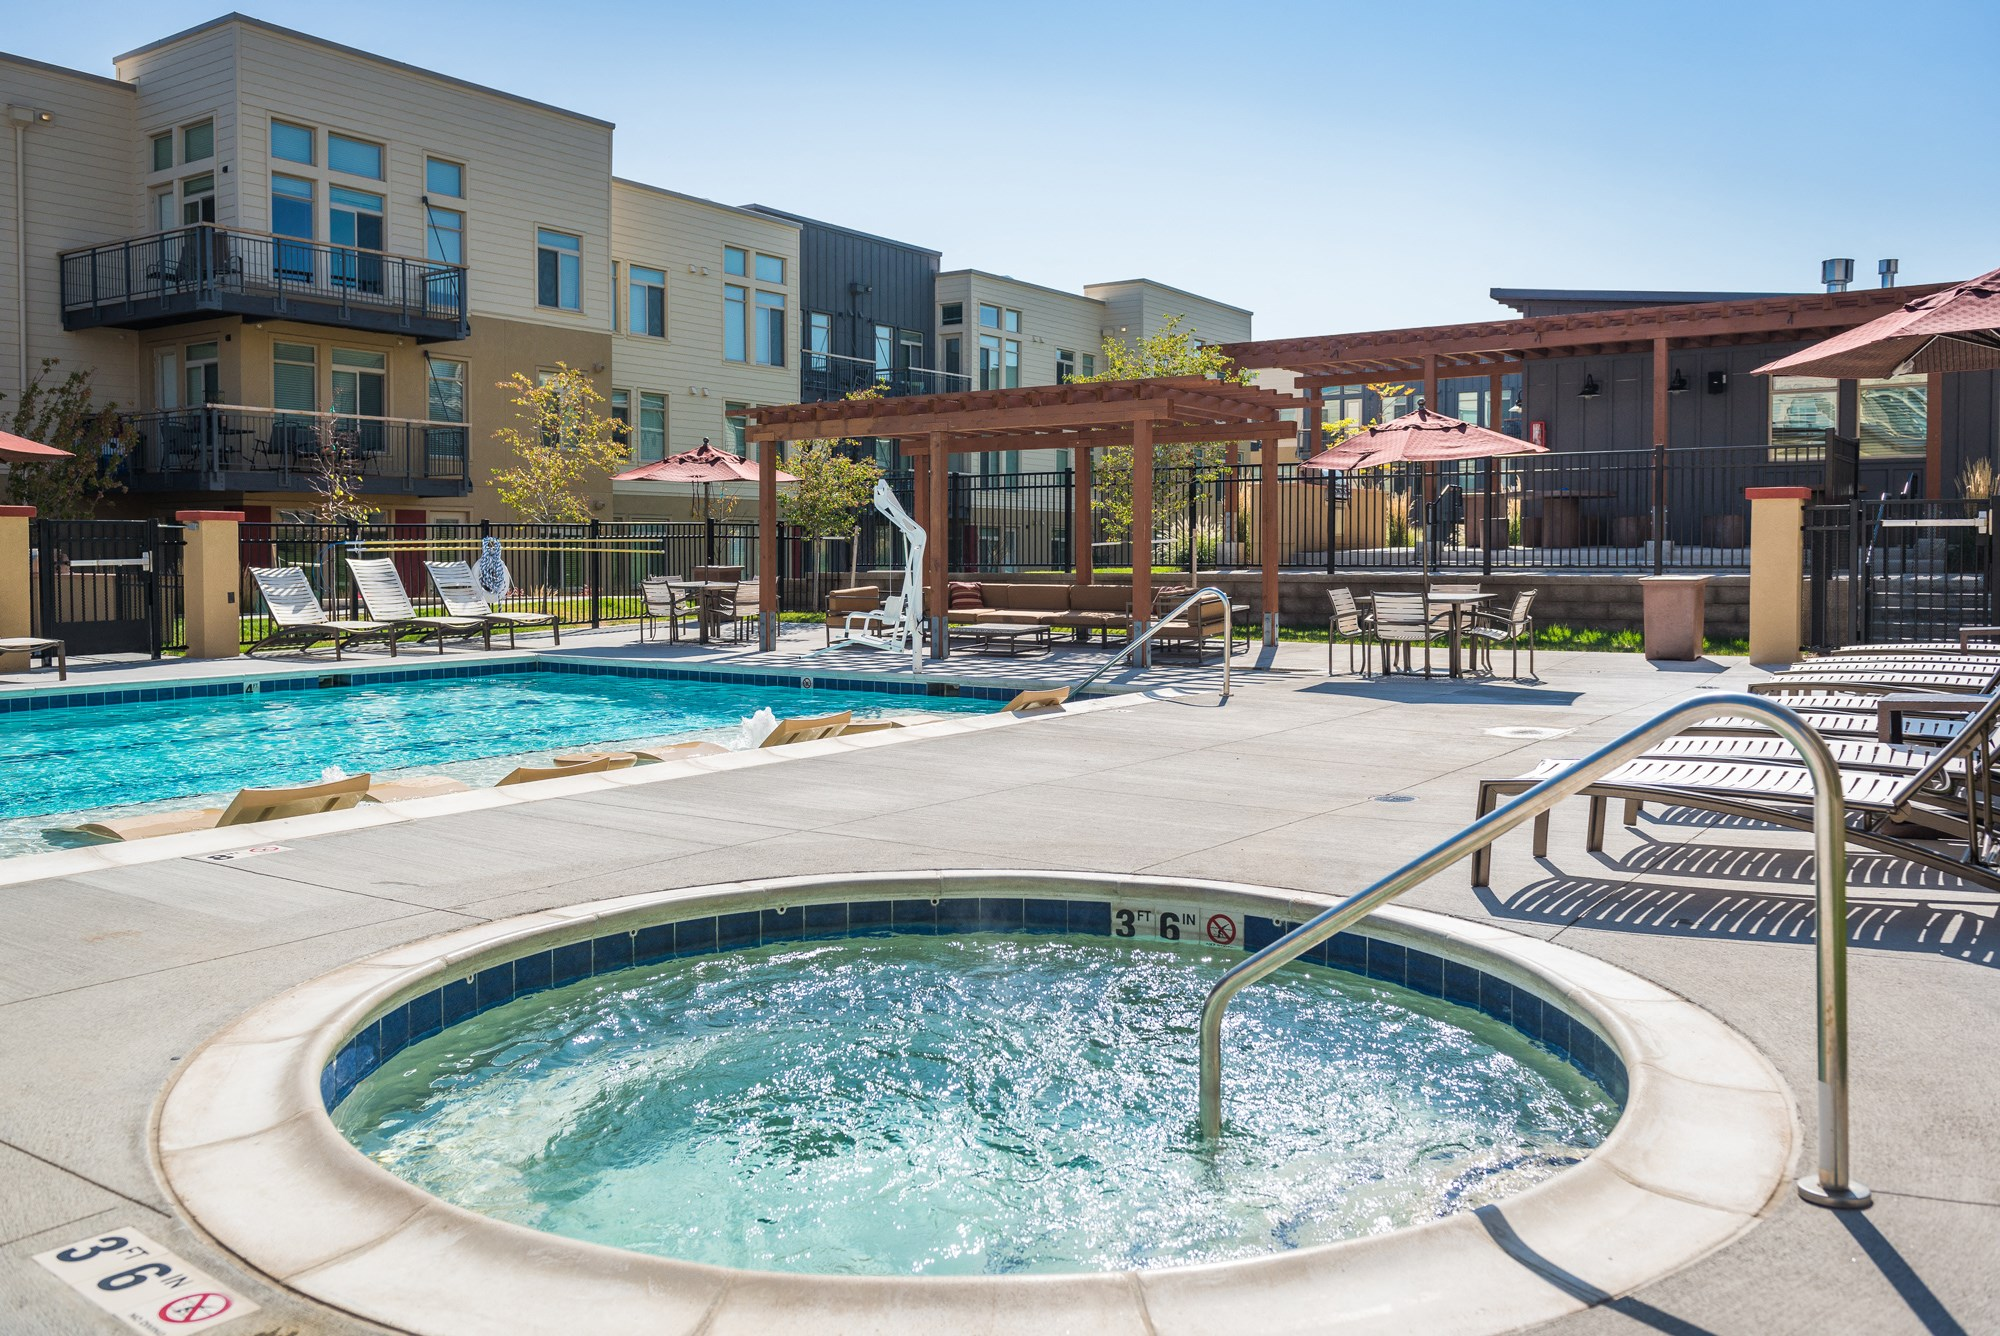 Hot Tub at 8000 Uptown Apartments in Broomfield, CO